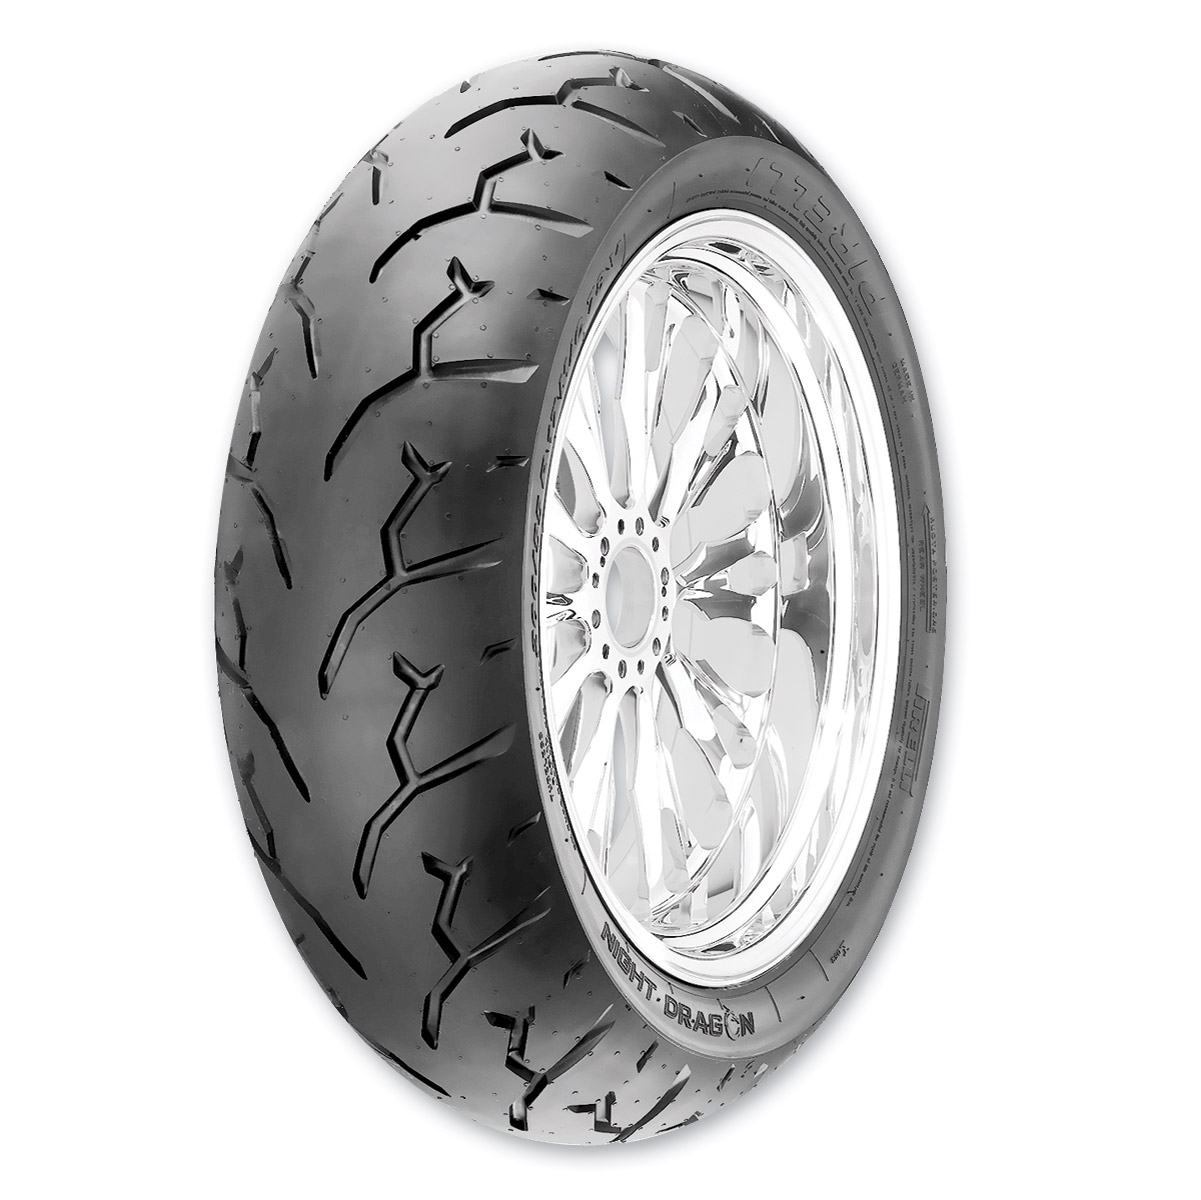 Pirelli Night Dragon 160/70B17 Rear Tire